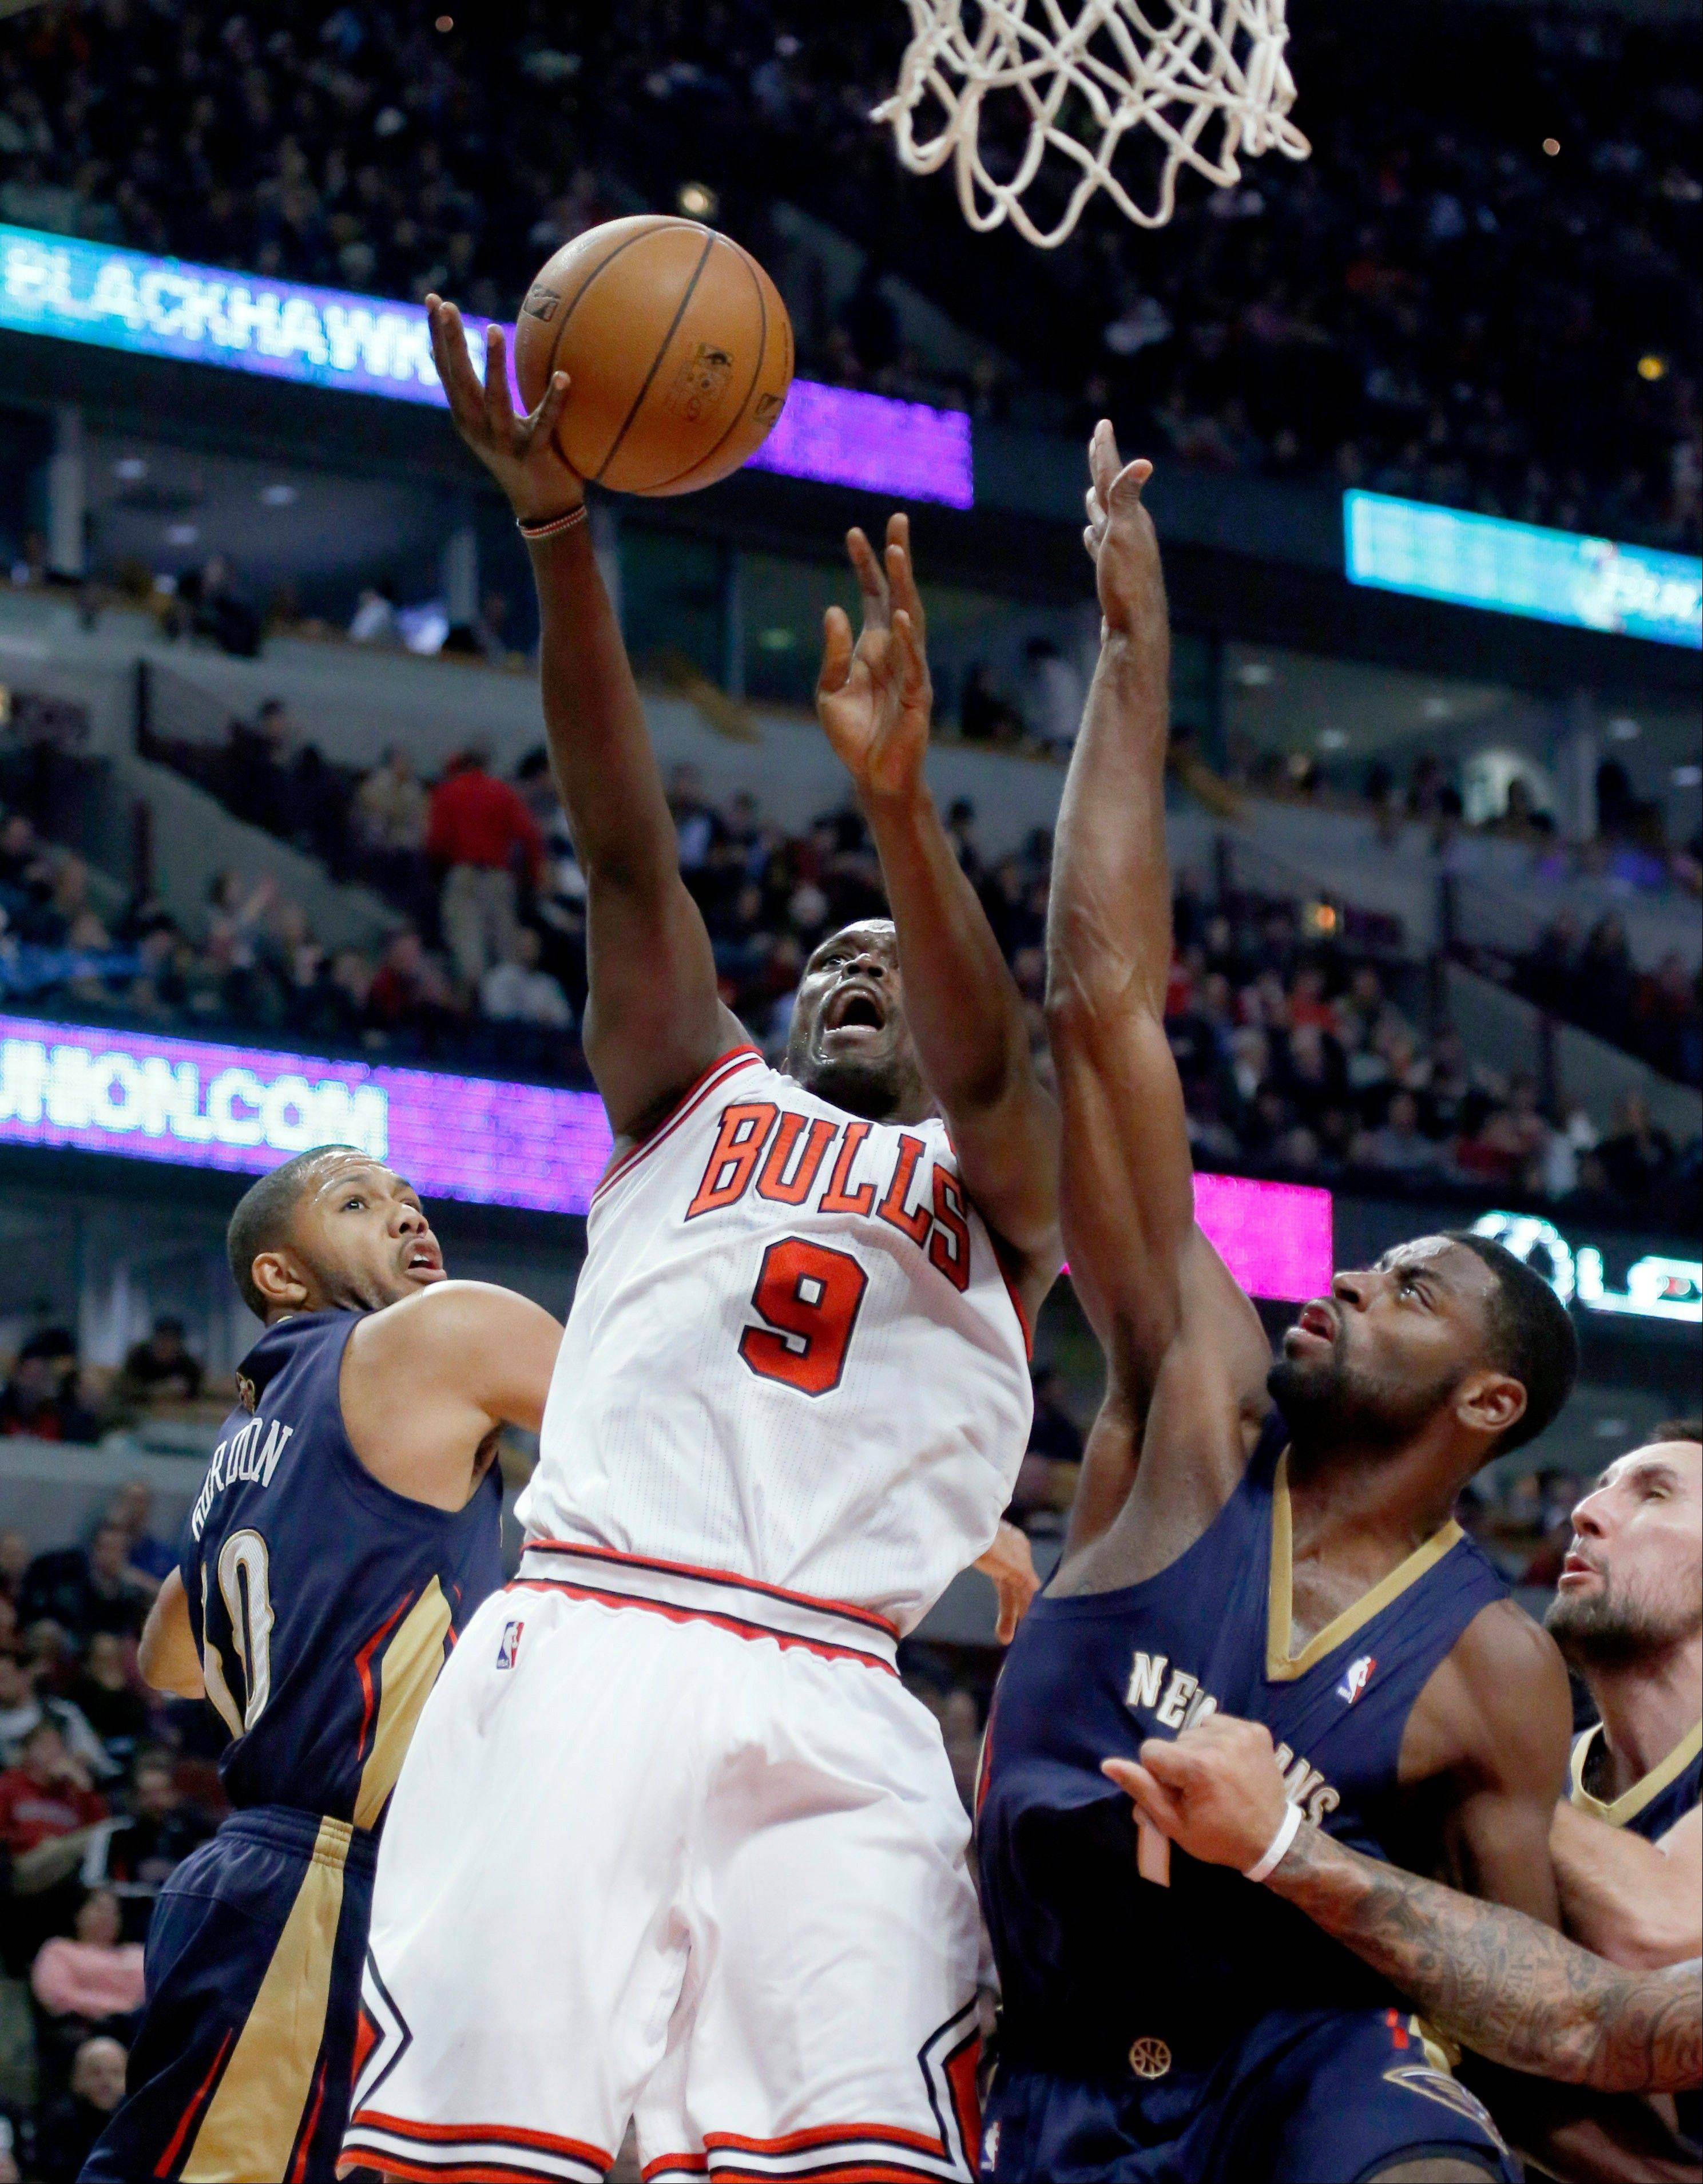 Bulls forward Luol Deng shoots over Pelicans guards Eric Gordon, left, and Tyreke Evans. Deng finished with 37 points.